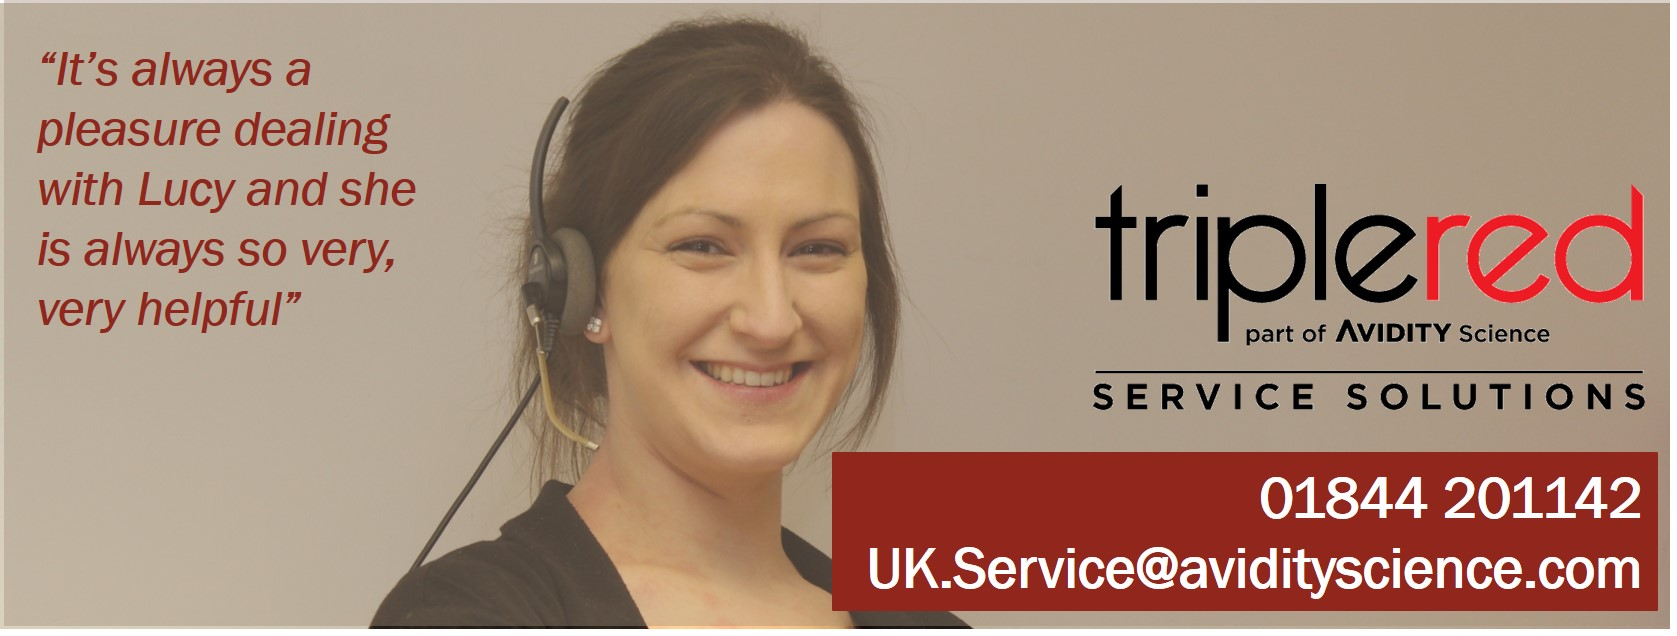 Triple Red Service Solutions - Support